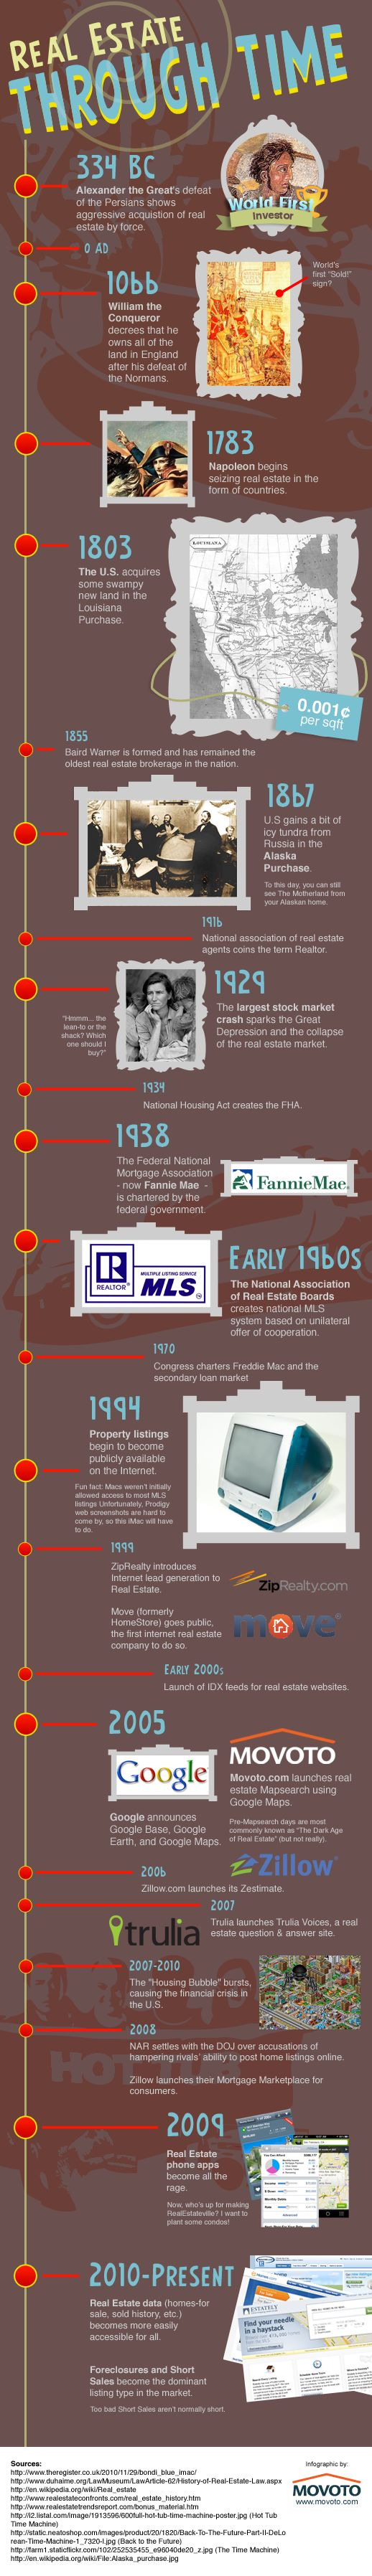 #INFOGRAPHIC: A Timeline of Real Estate History | #MovotoRealEstate